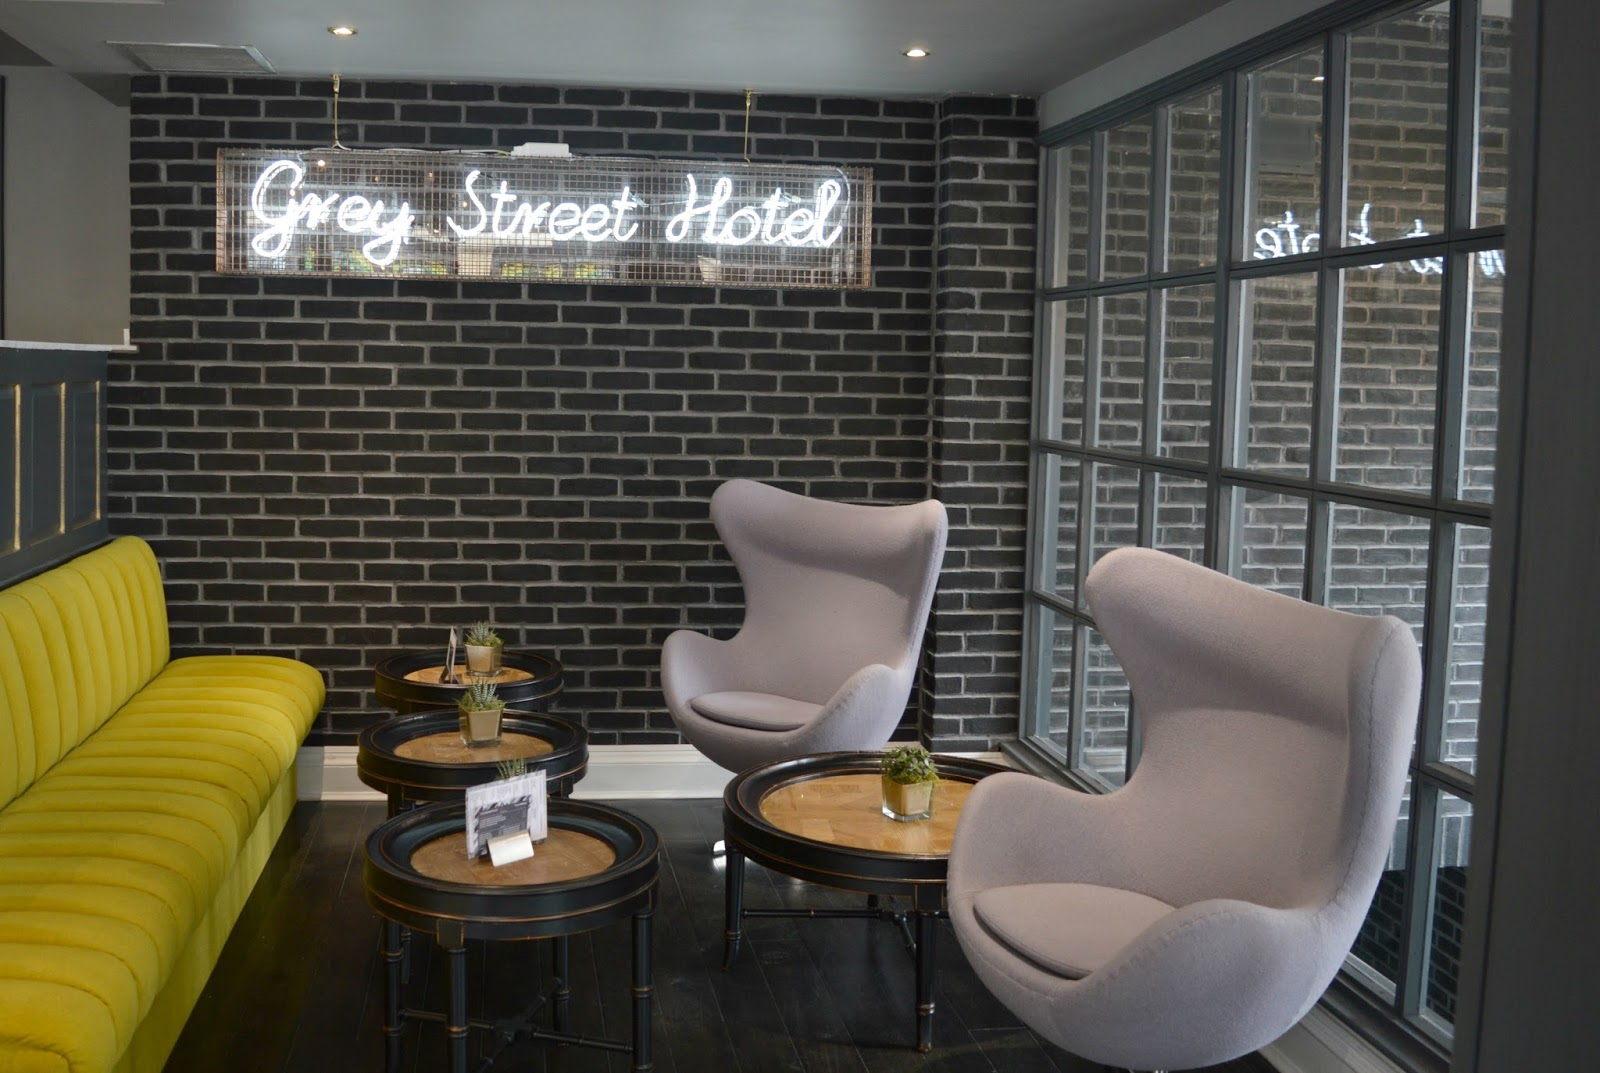 The Grey Street Hotel , Newcastle - a Boutique Hotel in the City Centre